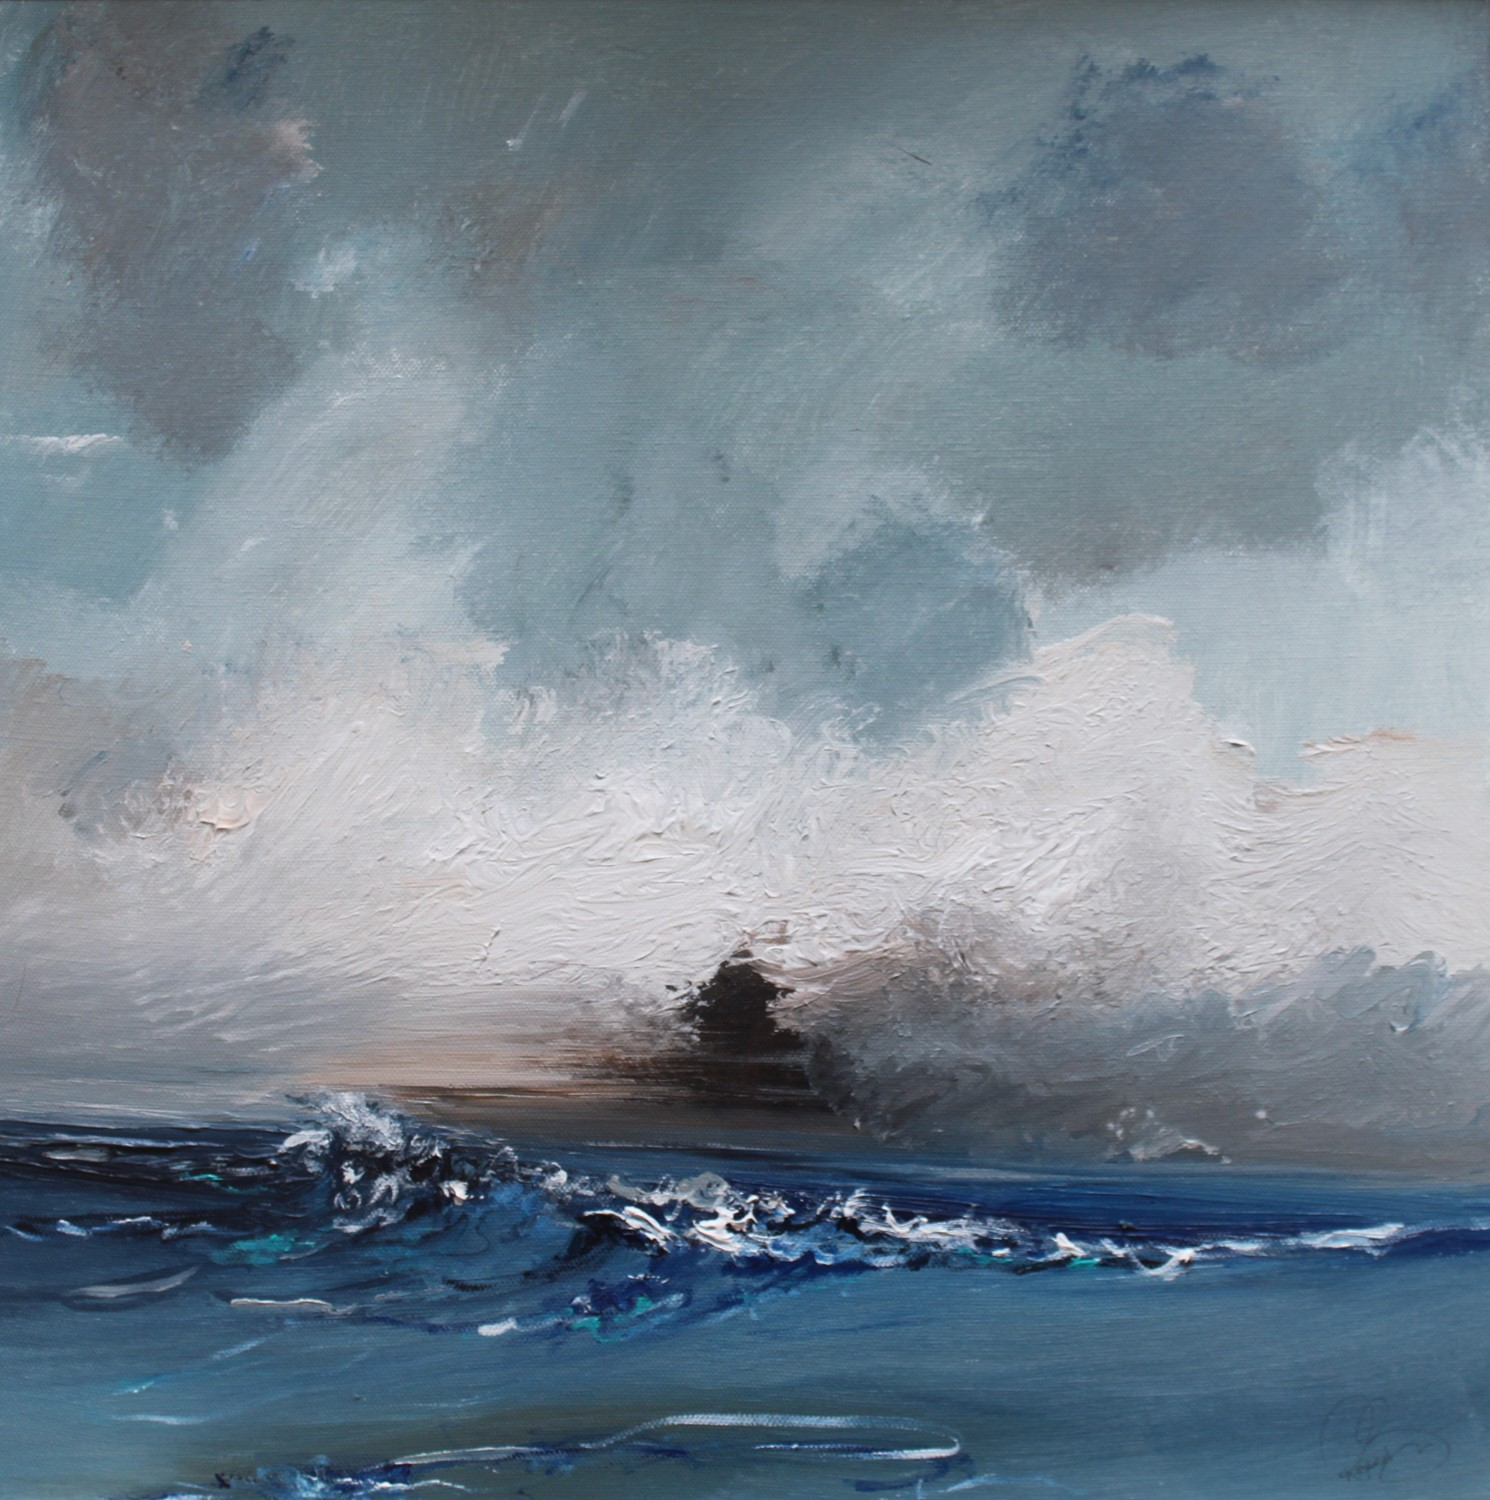 'Out at Sea' by artist Rosanne Barr